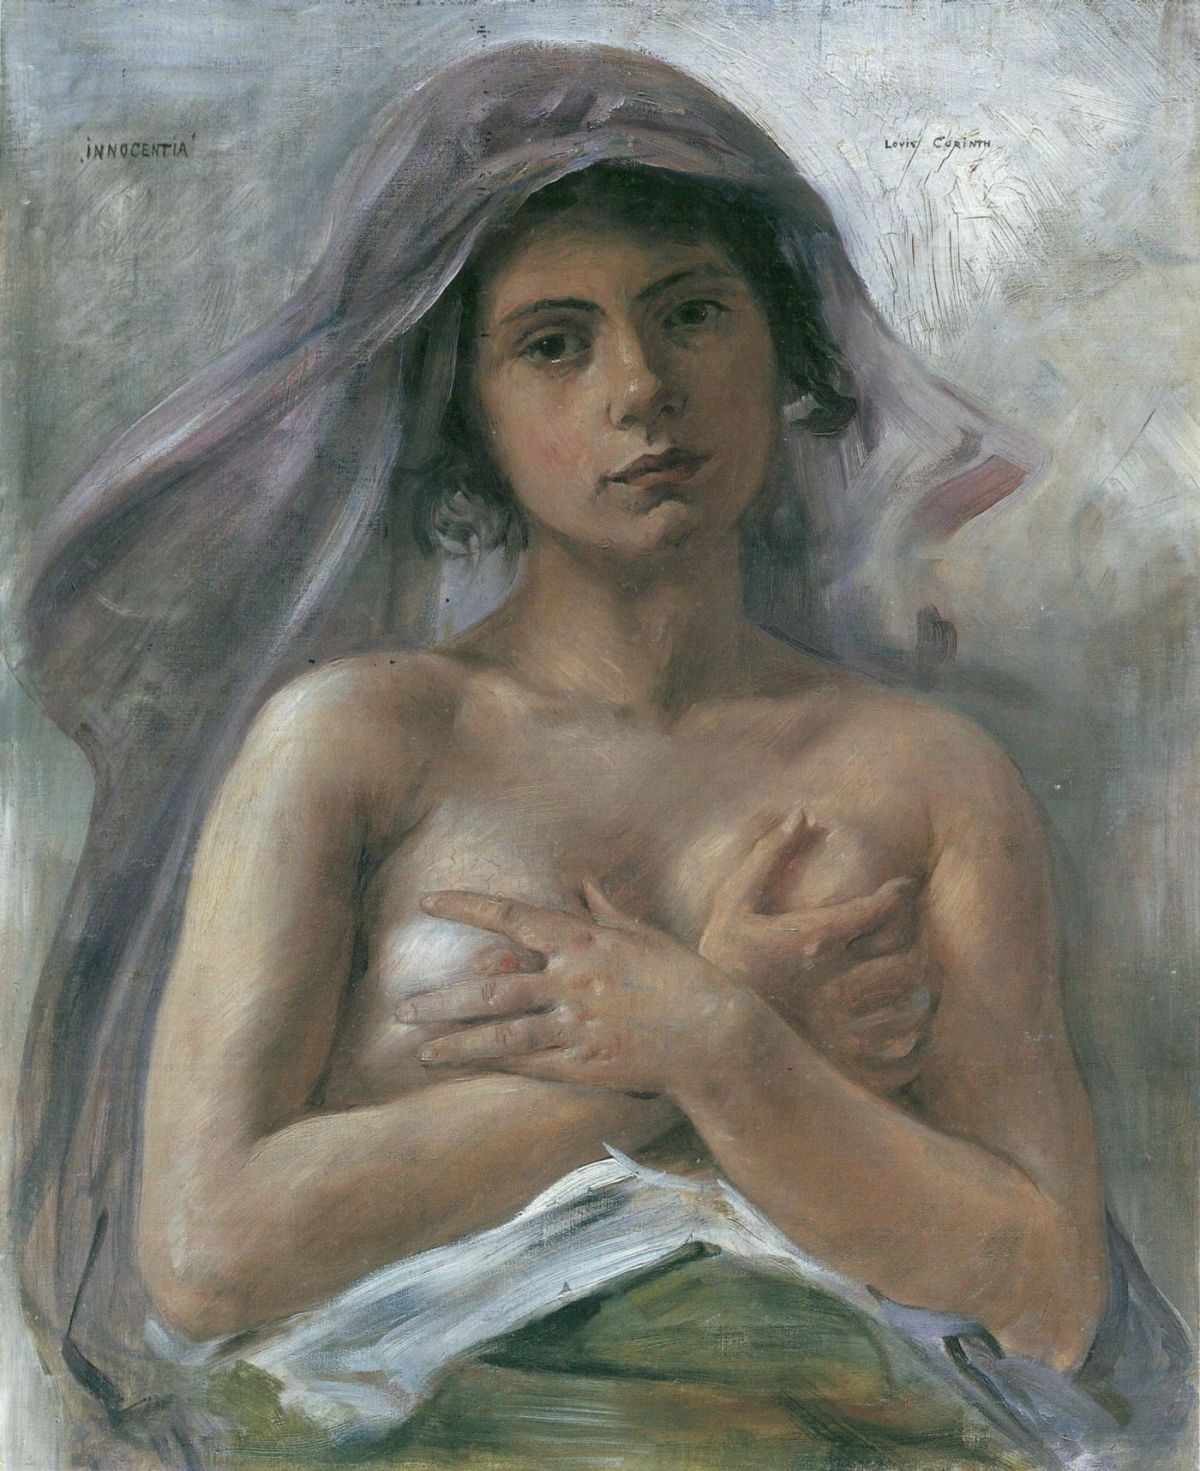 Innocentia by Lovis Corinth